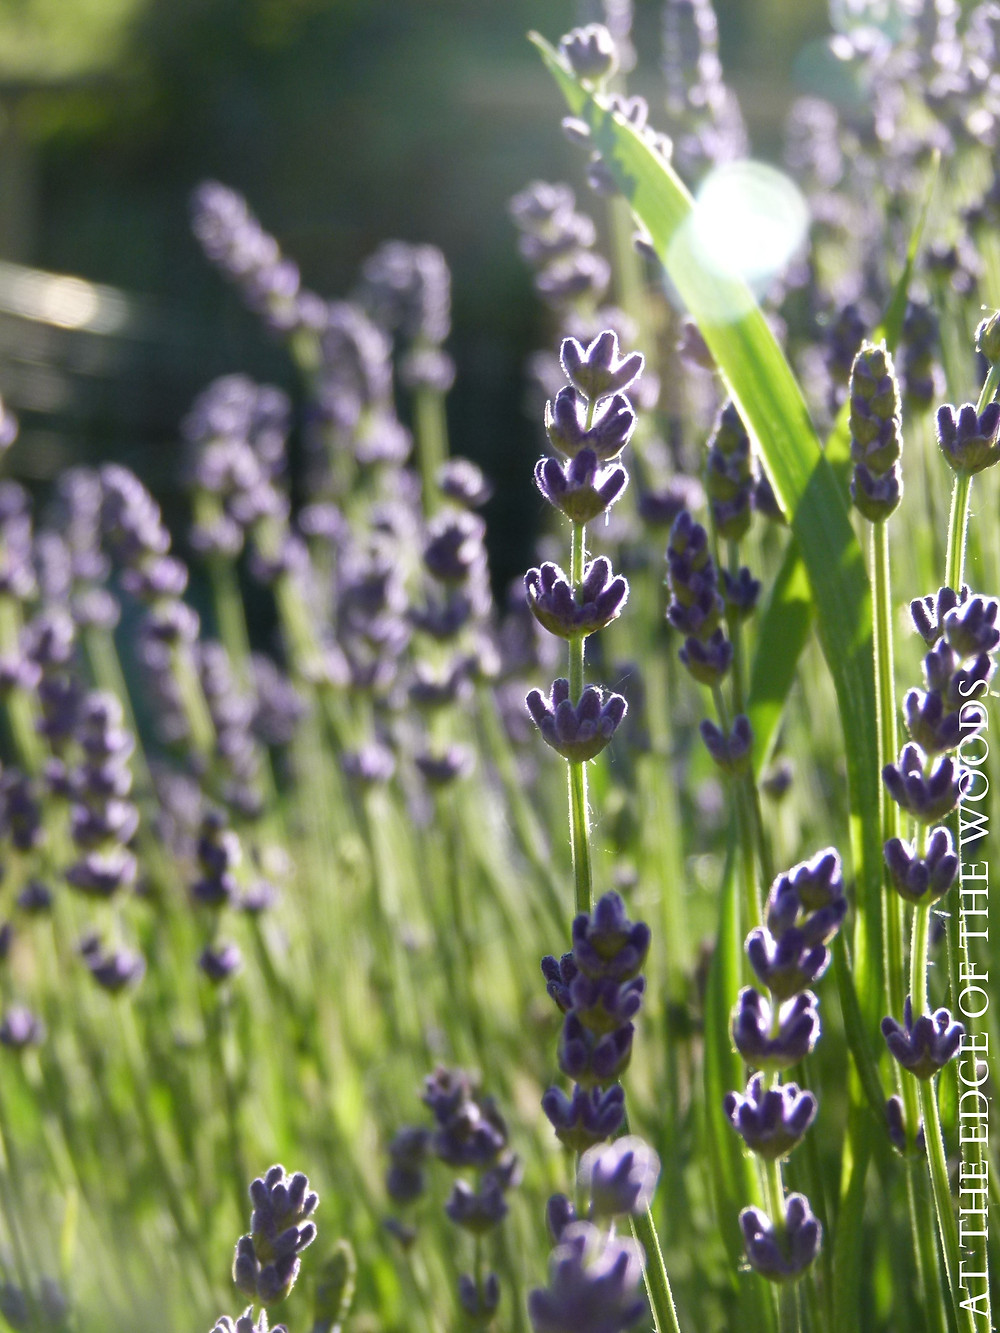 numerous bushes of purple lavender buds are about to open into fragrant blooms